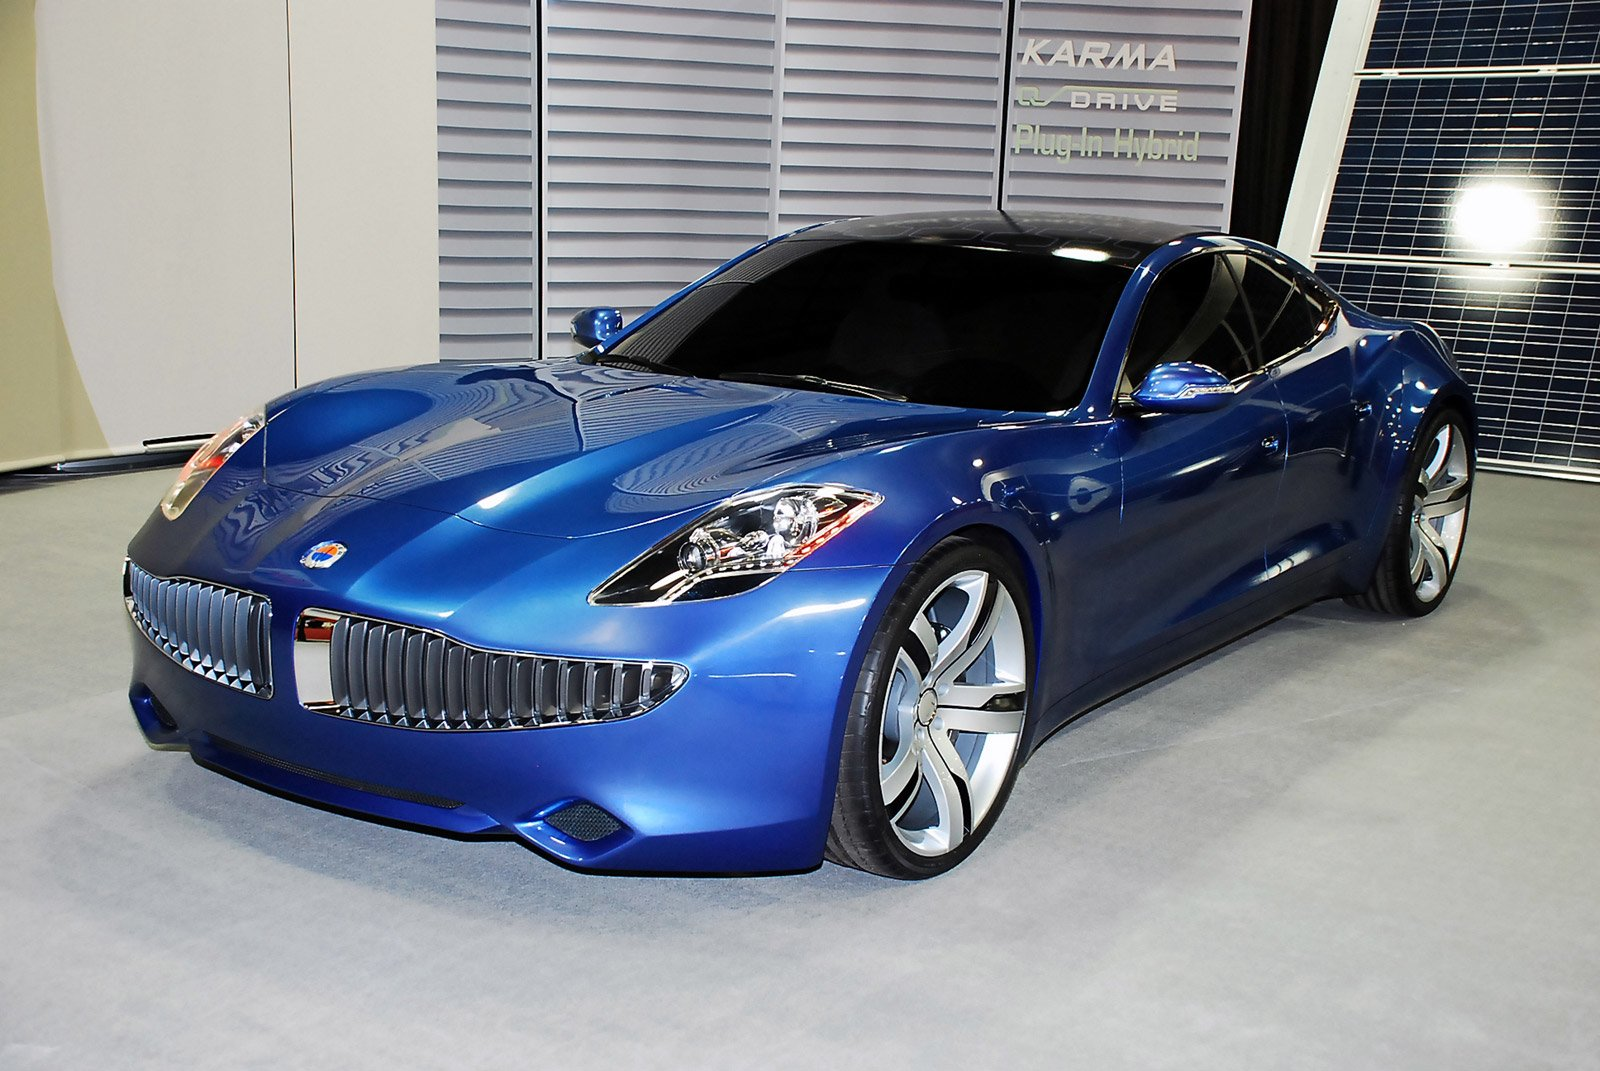 Latest Fisker Karma Hybrid Car And Electronic Wallpaper Free Download